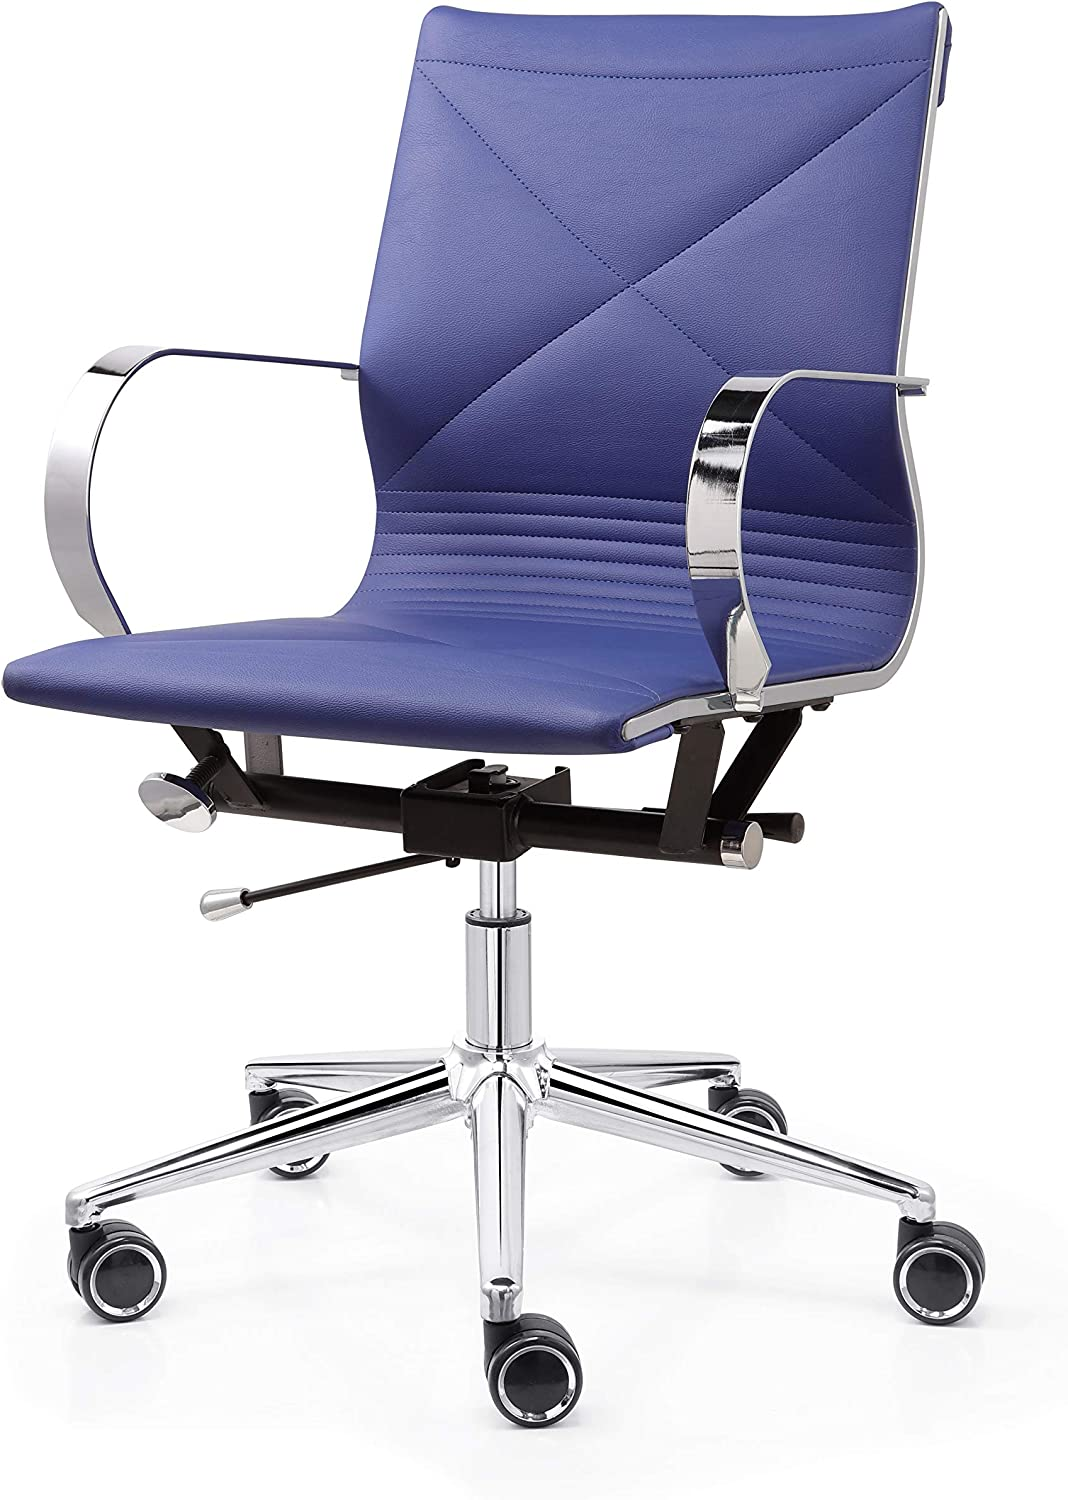 M365 Vegan Leather Ribbed Office Chair- Modern Design Executive Chair- Premium Quality Vegan Leather Seating- Chrome, Gold or Black Matte Frame- Optimal Comfort (Medium Blue)